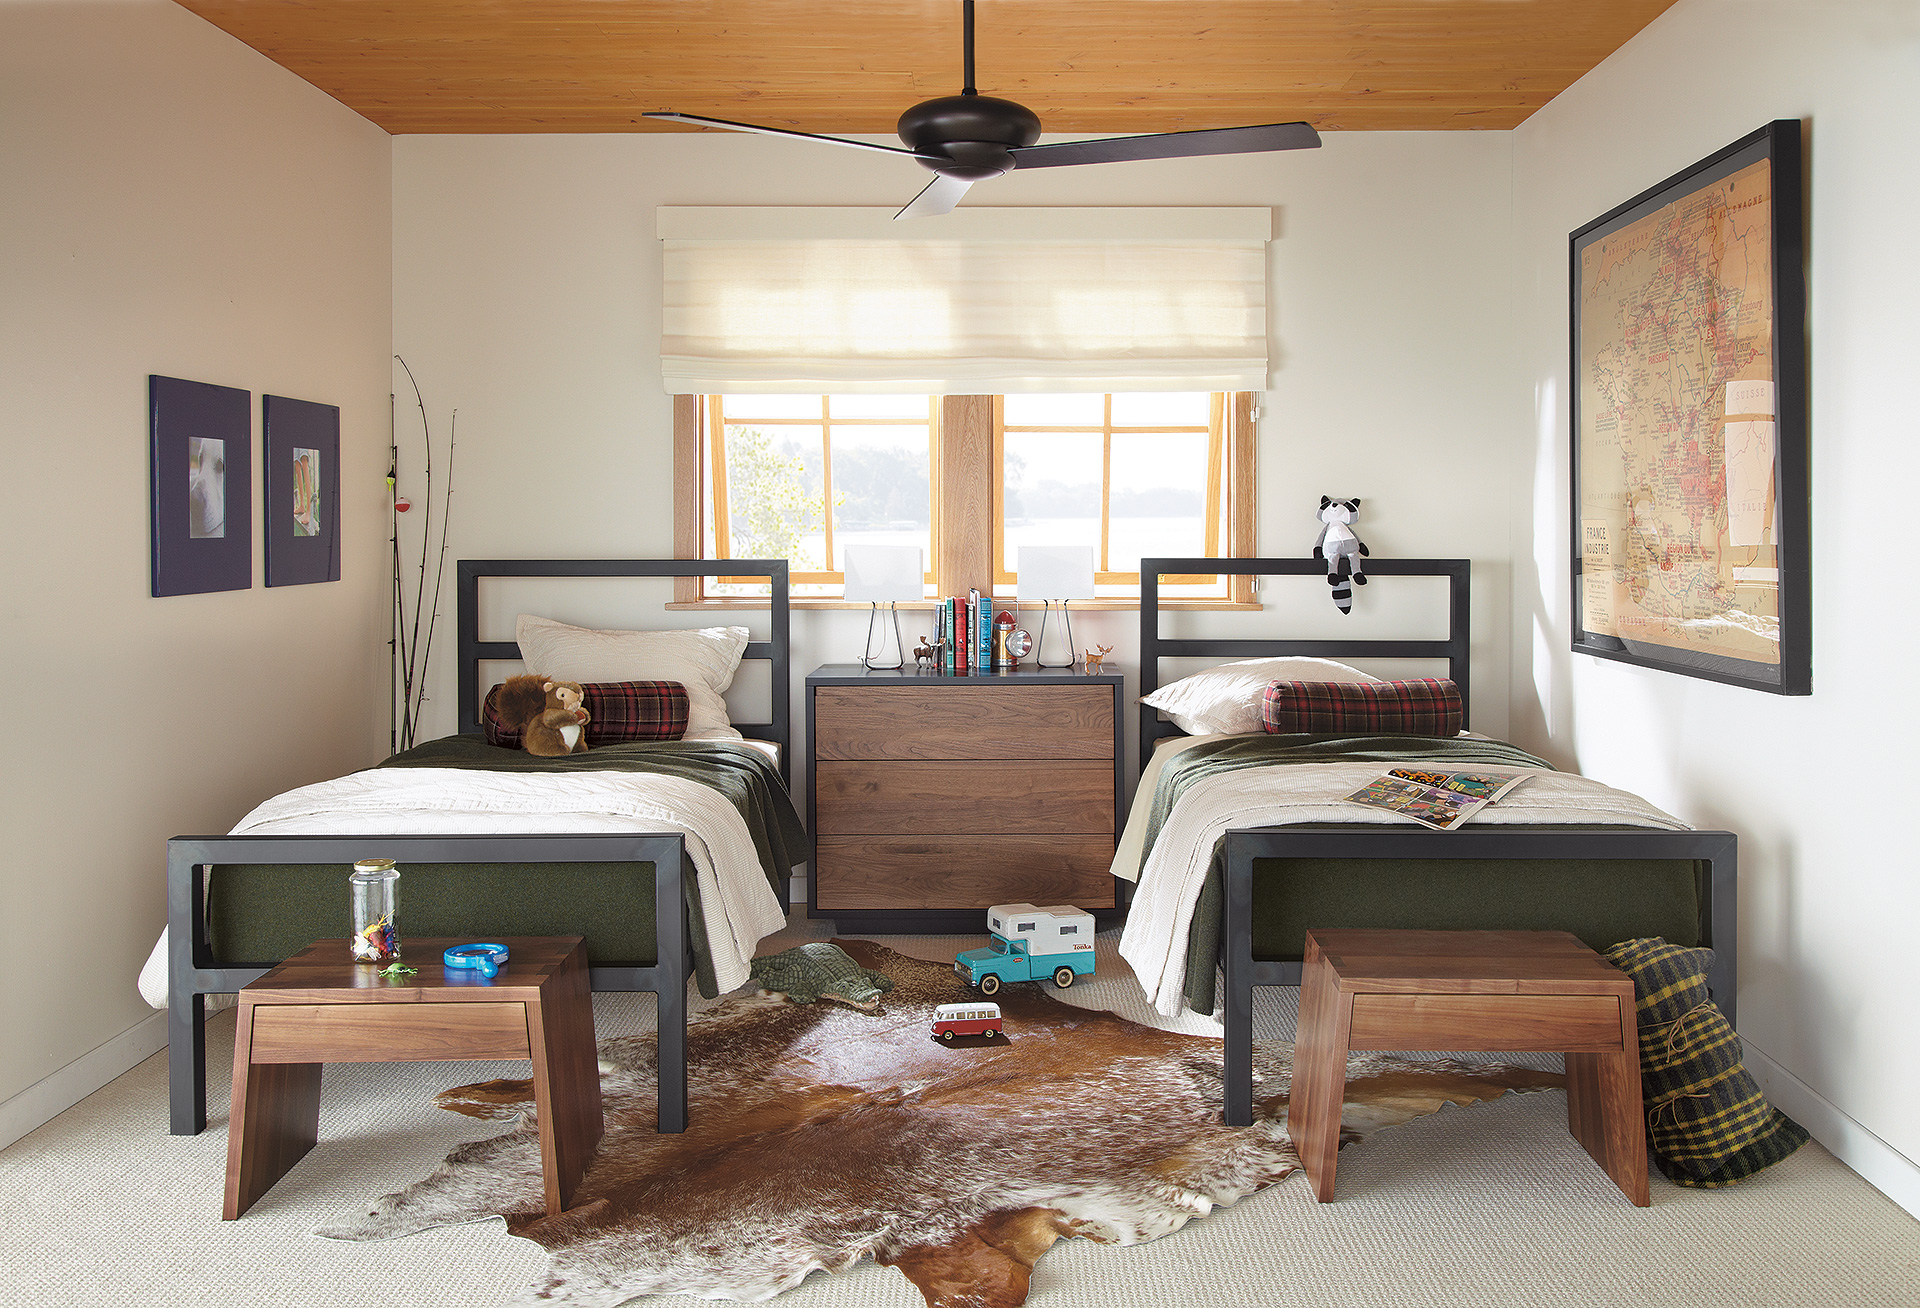 Parsons twin beds